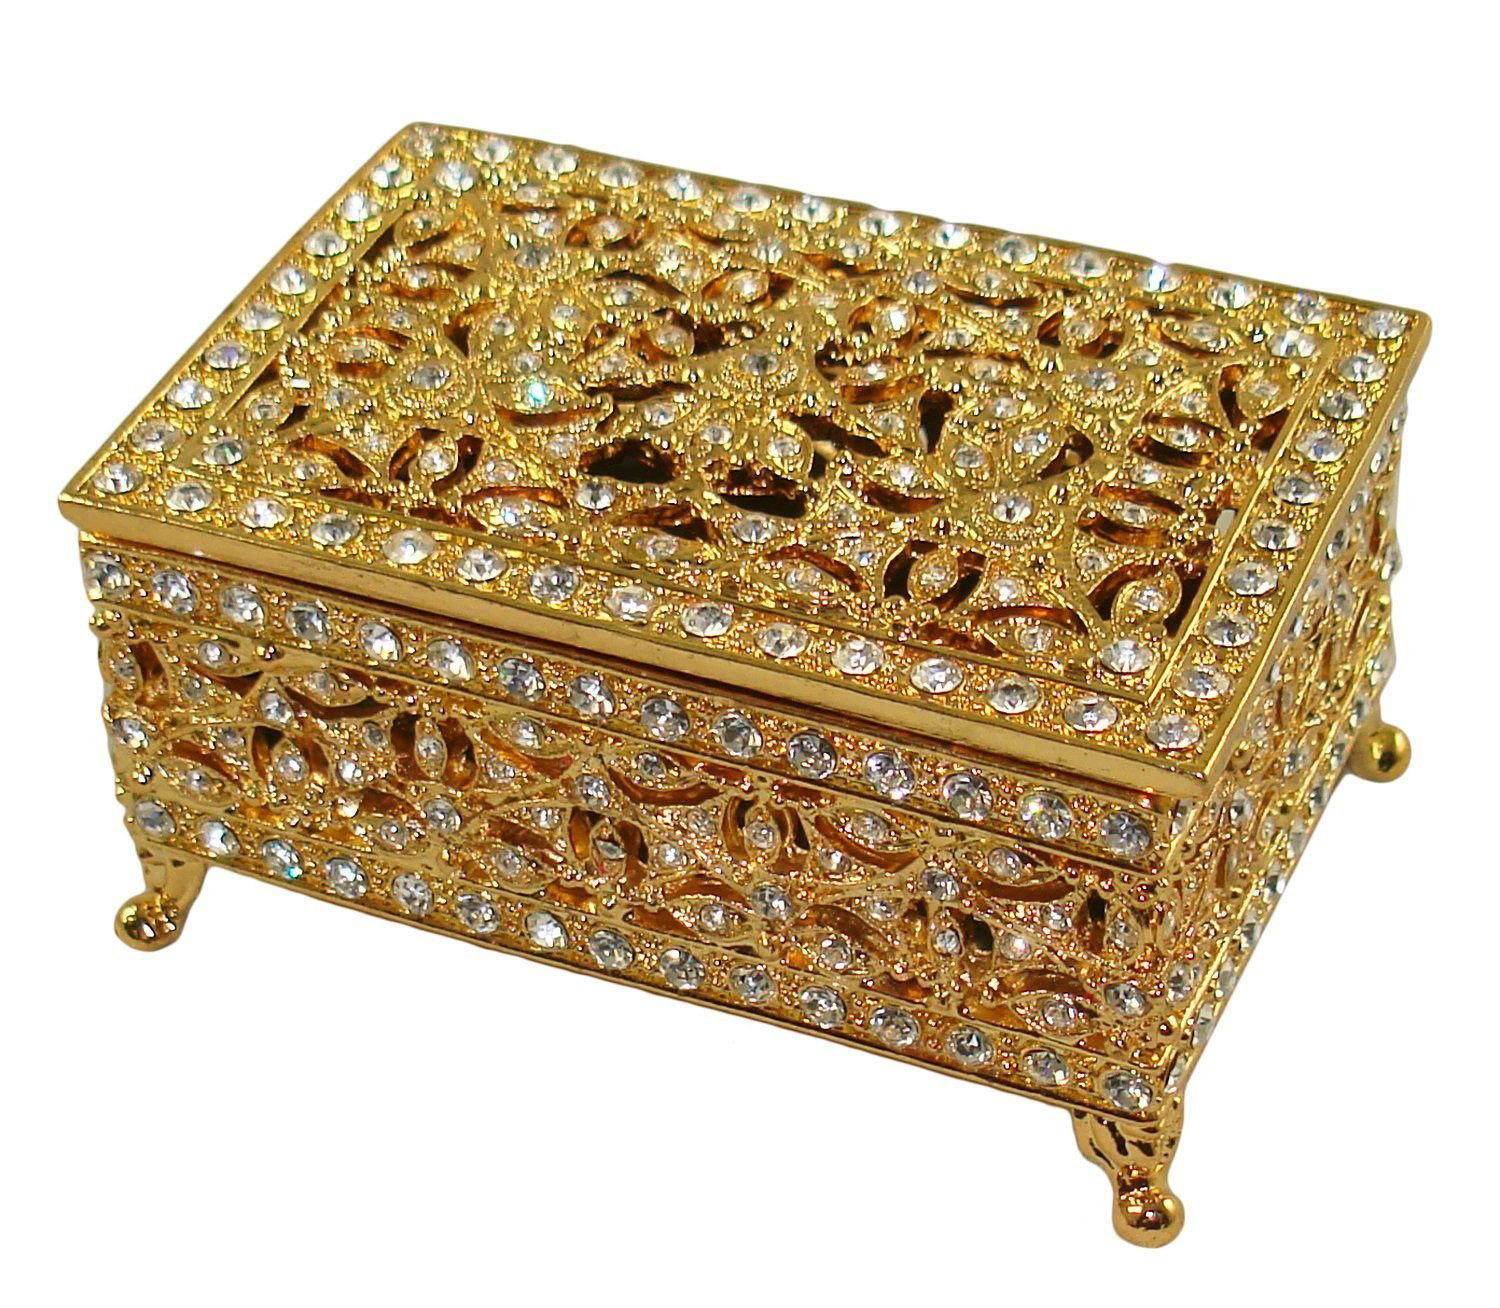 Stunning Intricate Golden Swarovski Decorated Antique Jewelry Box